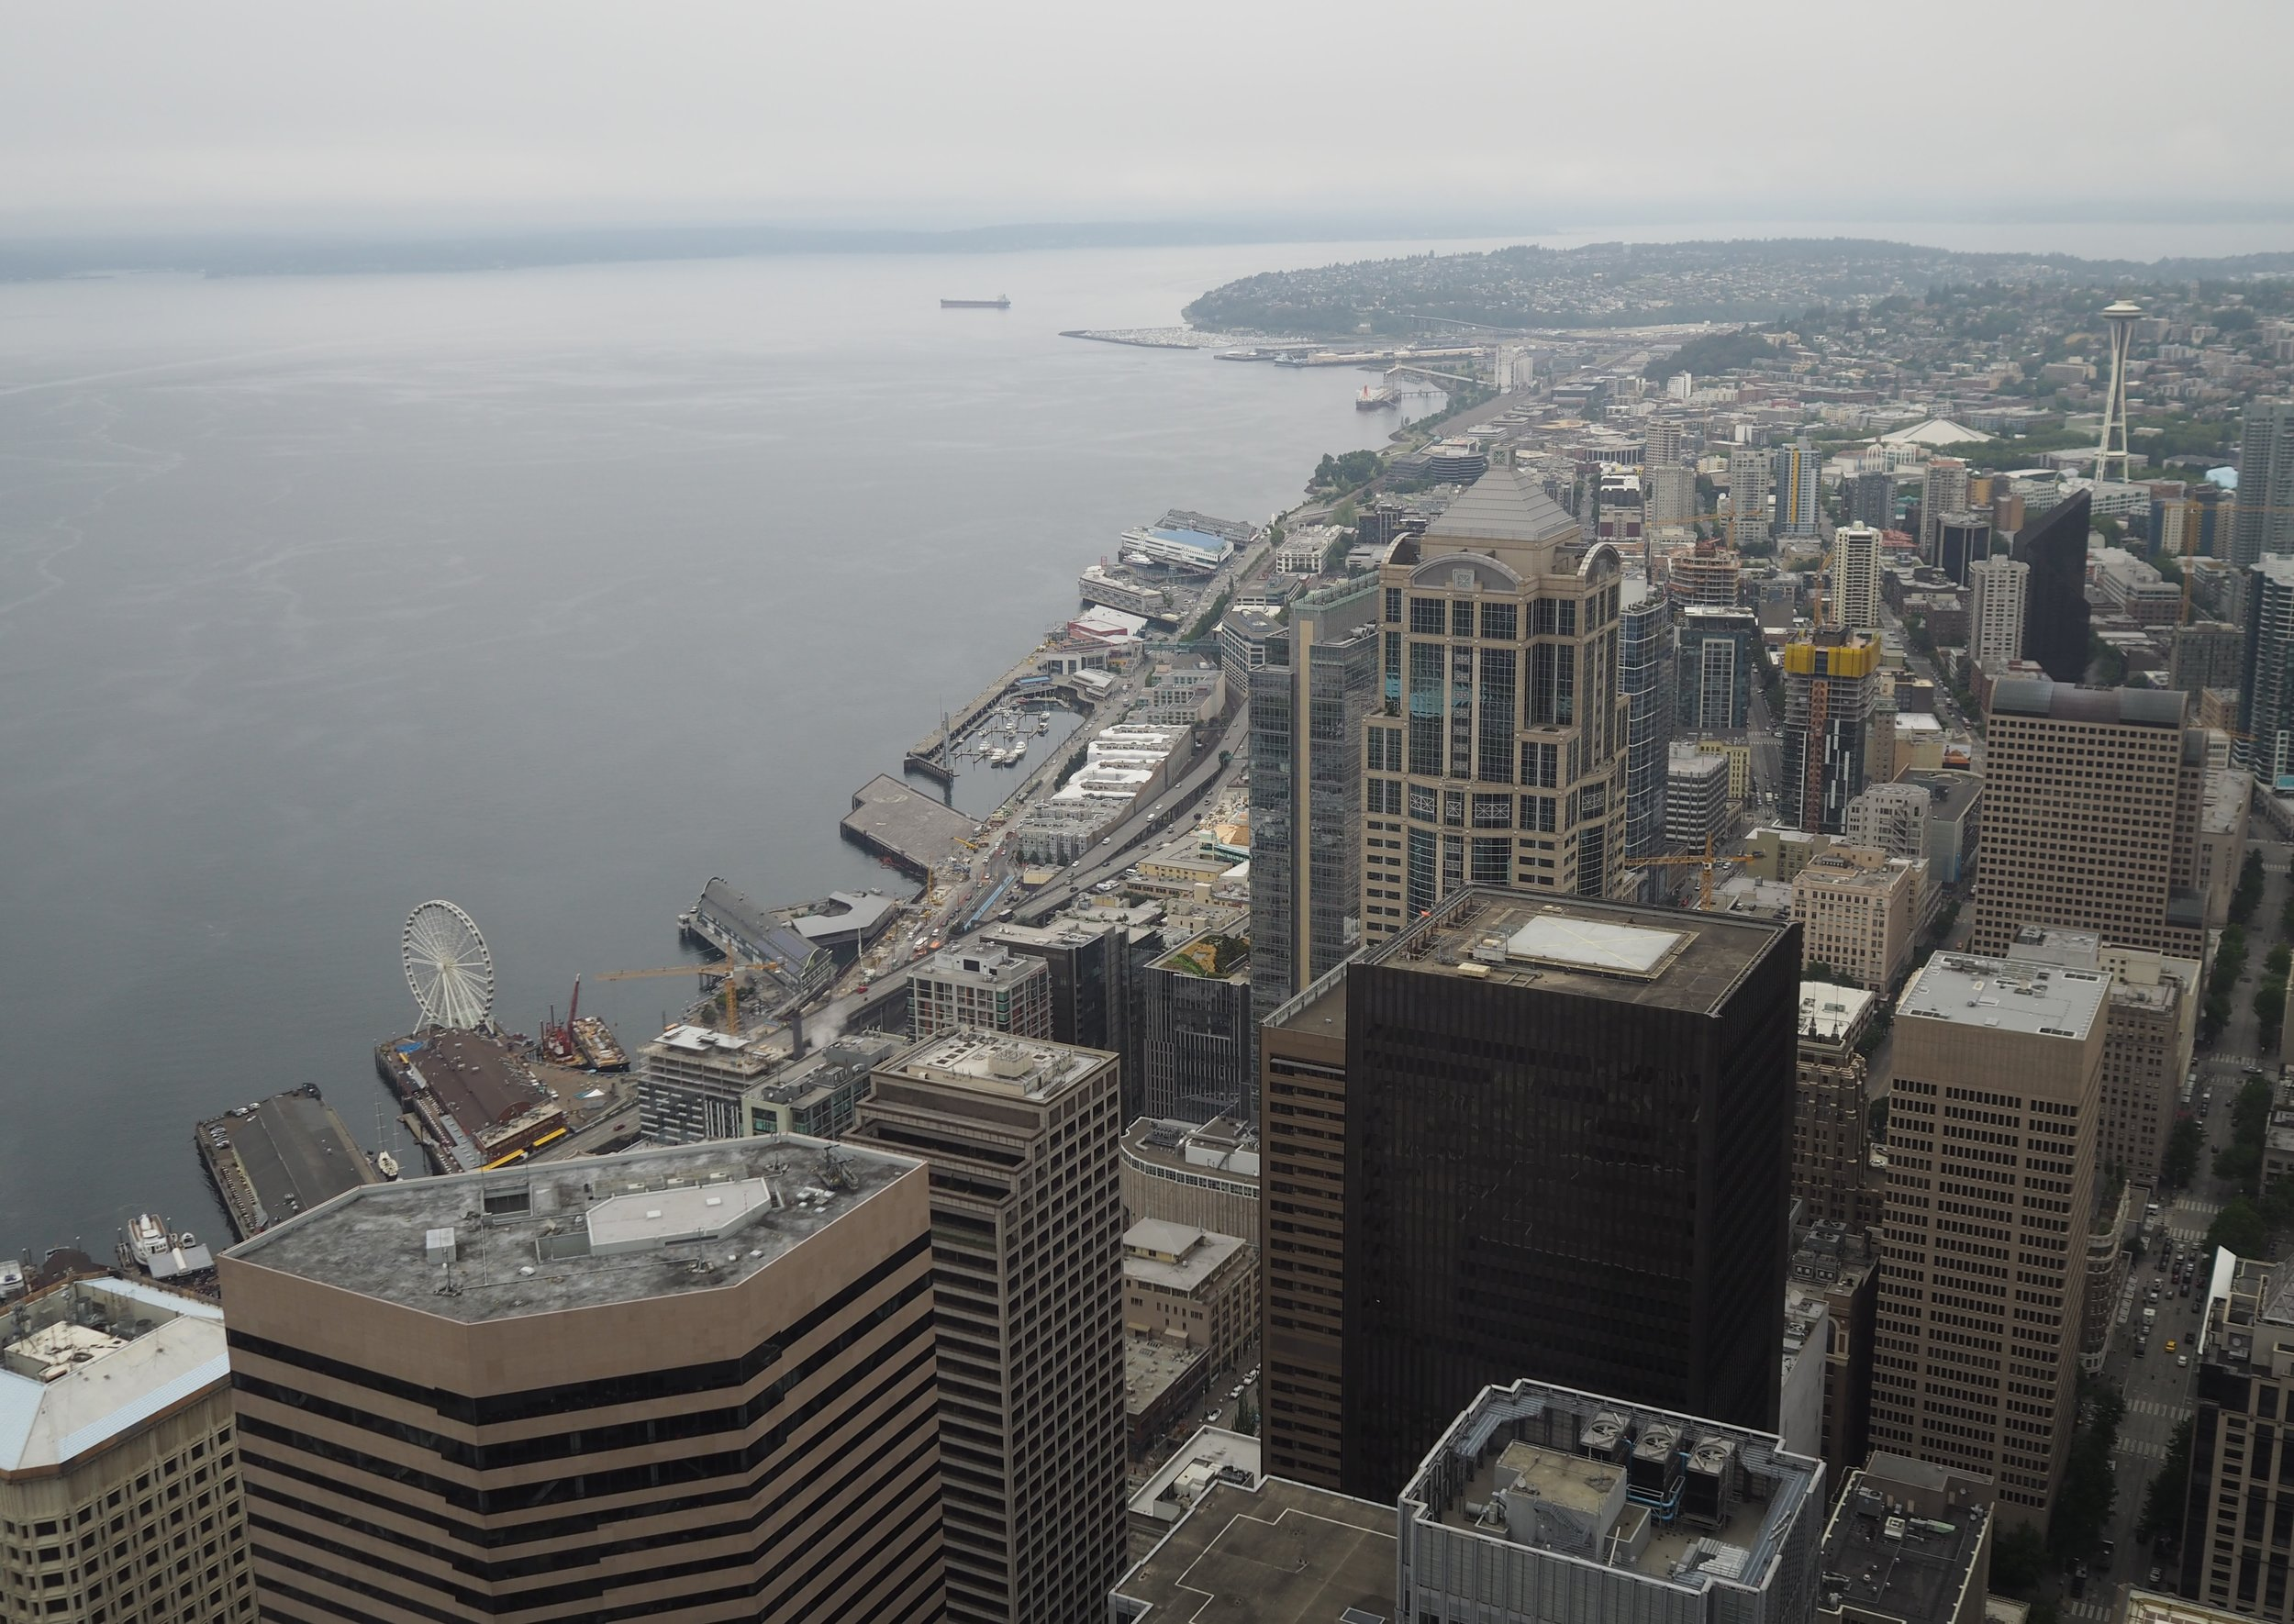 """Like this view, our media partners are impressive, too. projekt202 sincerely thanks Code Fellows, Creative Mornings Seattle, Ladies that UX Seattle, Puget Sound SIGCHI and the Washington Technology Industry Association for their support of the """"Designing Software for People"""" event."""